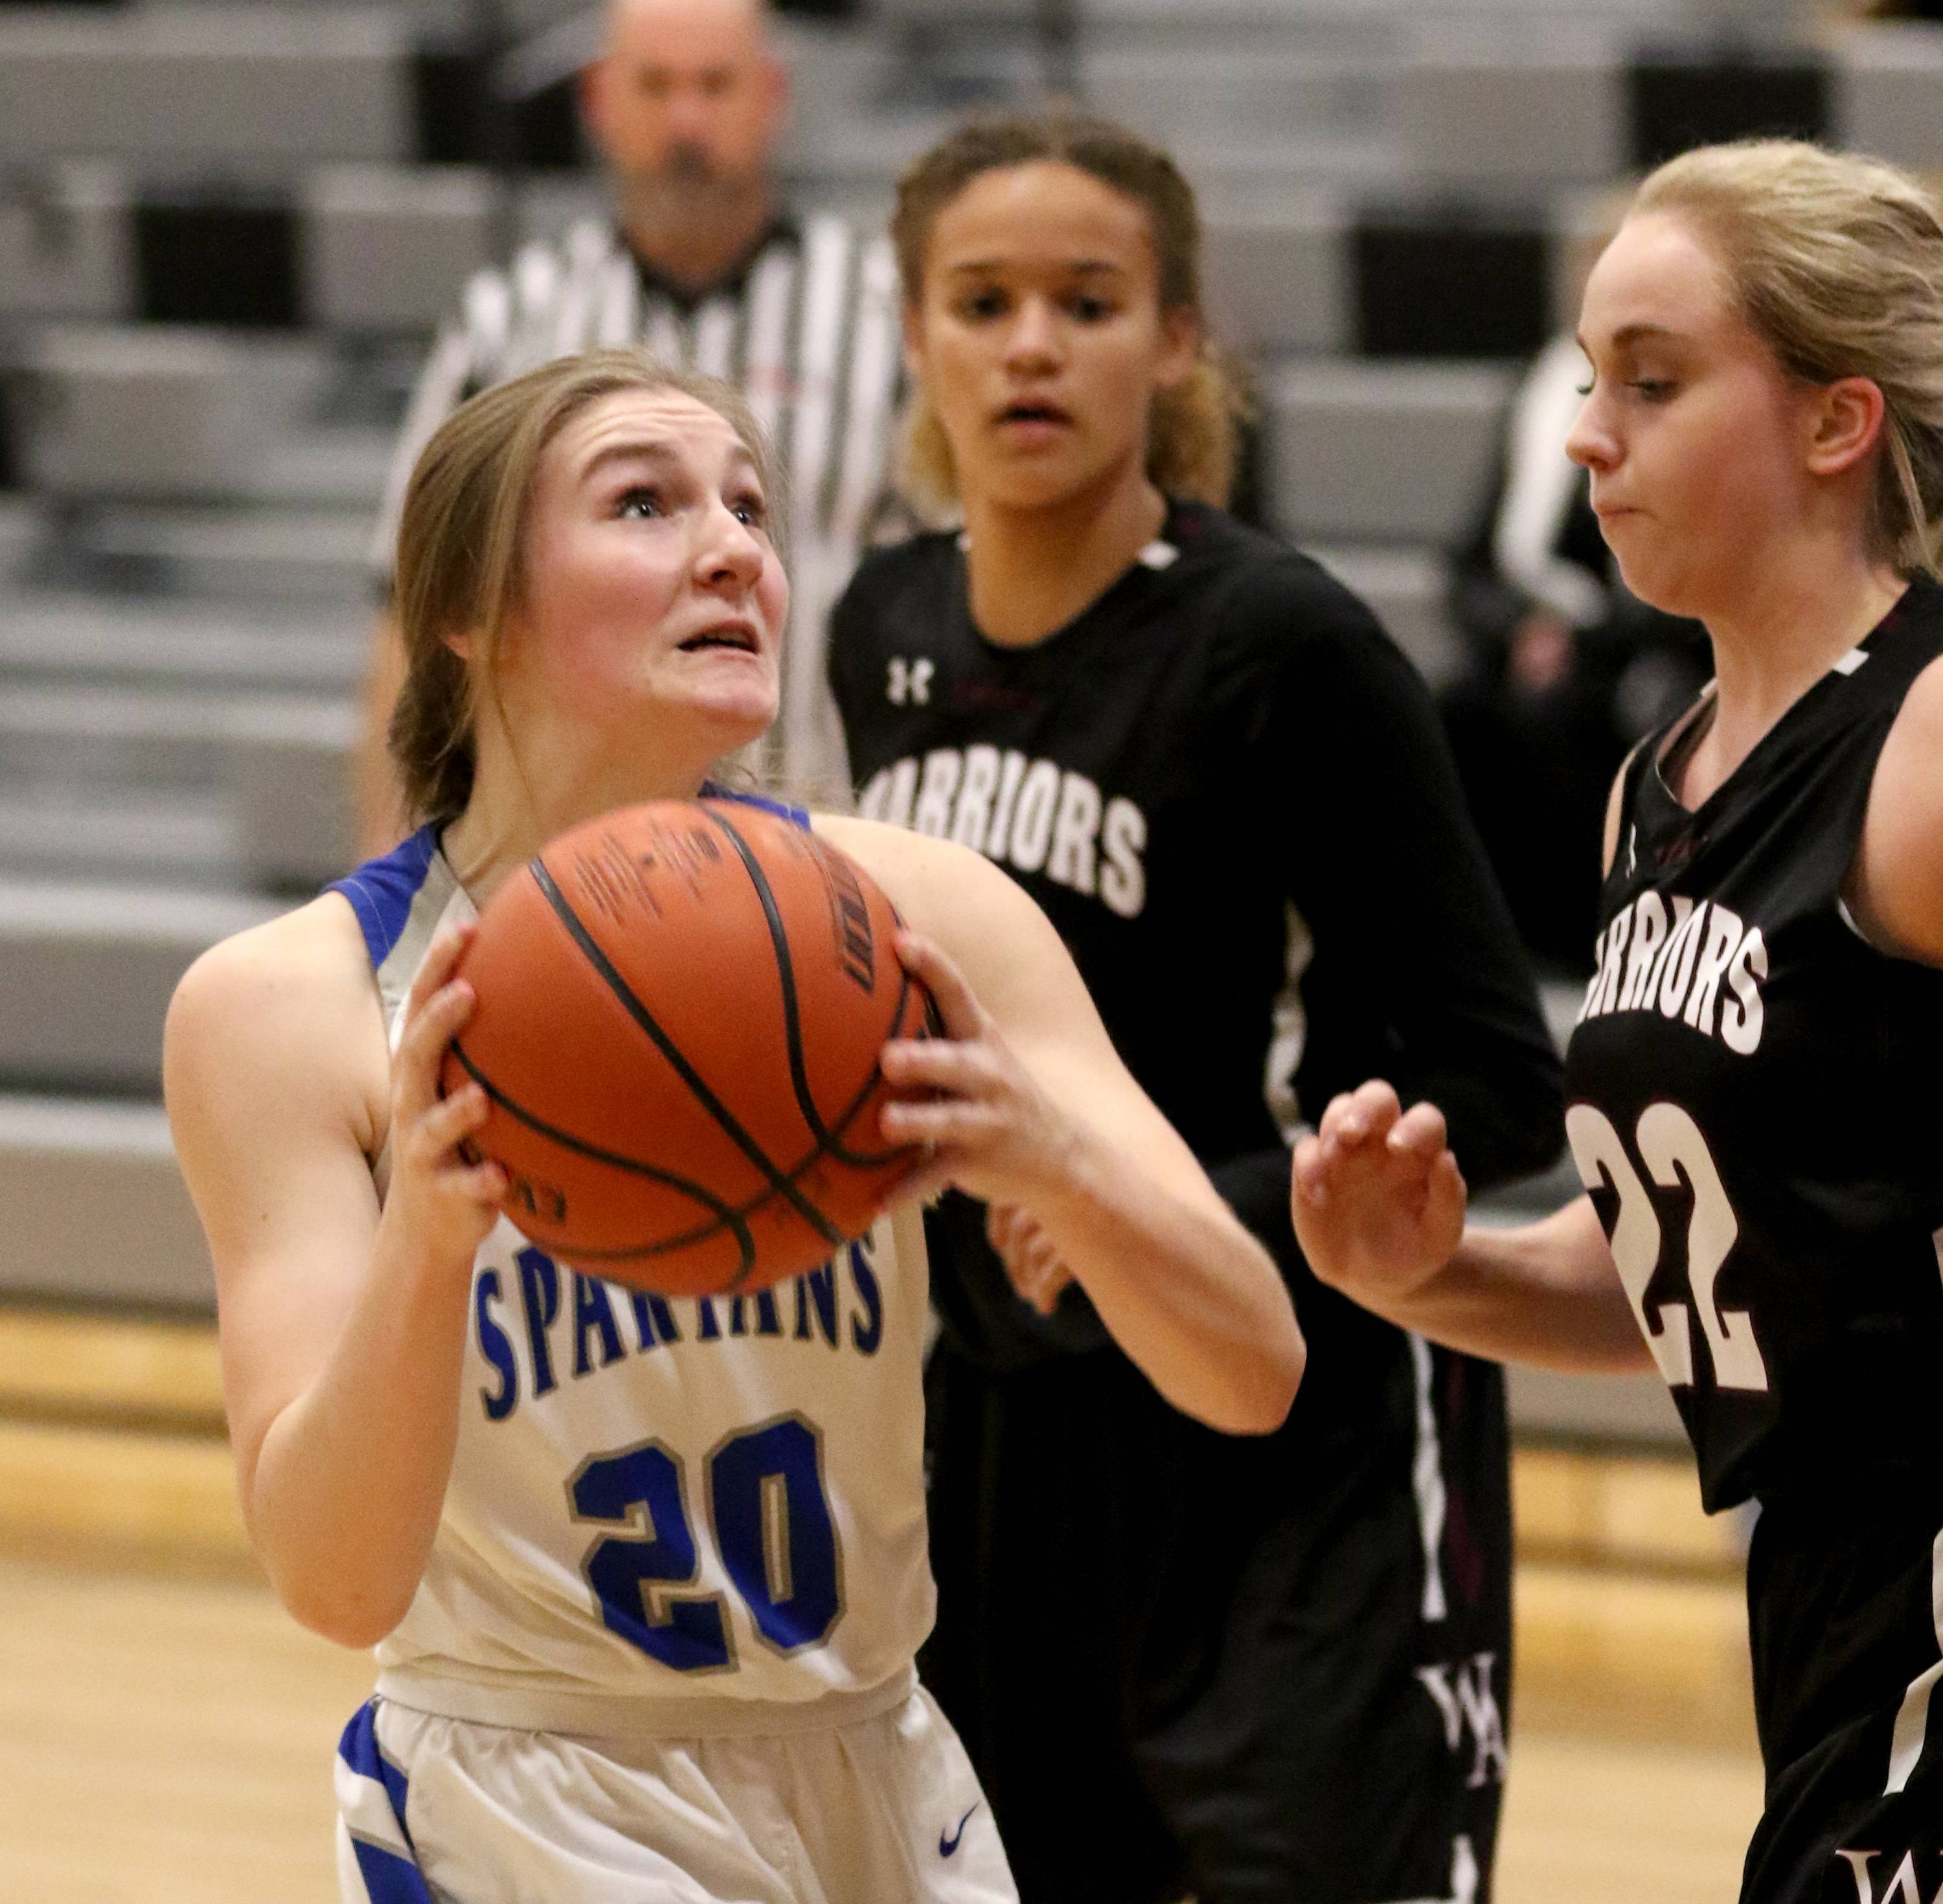 St. Francis' Megan Kruse looks to the hoop against Wheaton Academy during regional girls varsity basketball at Kaneland High School Monday night.